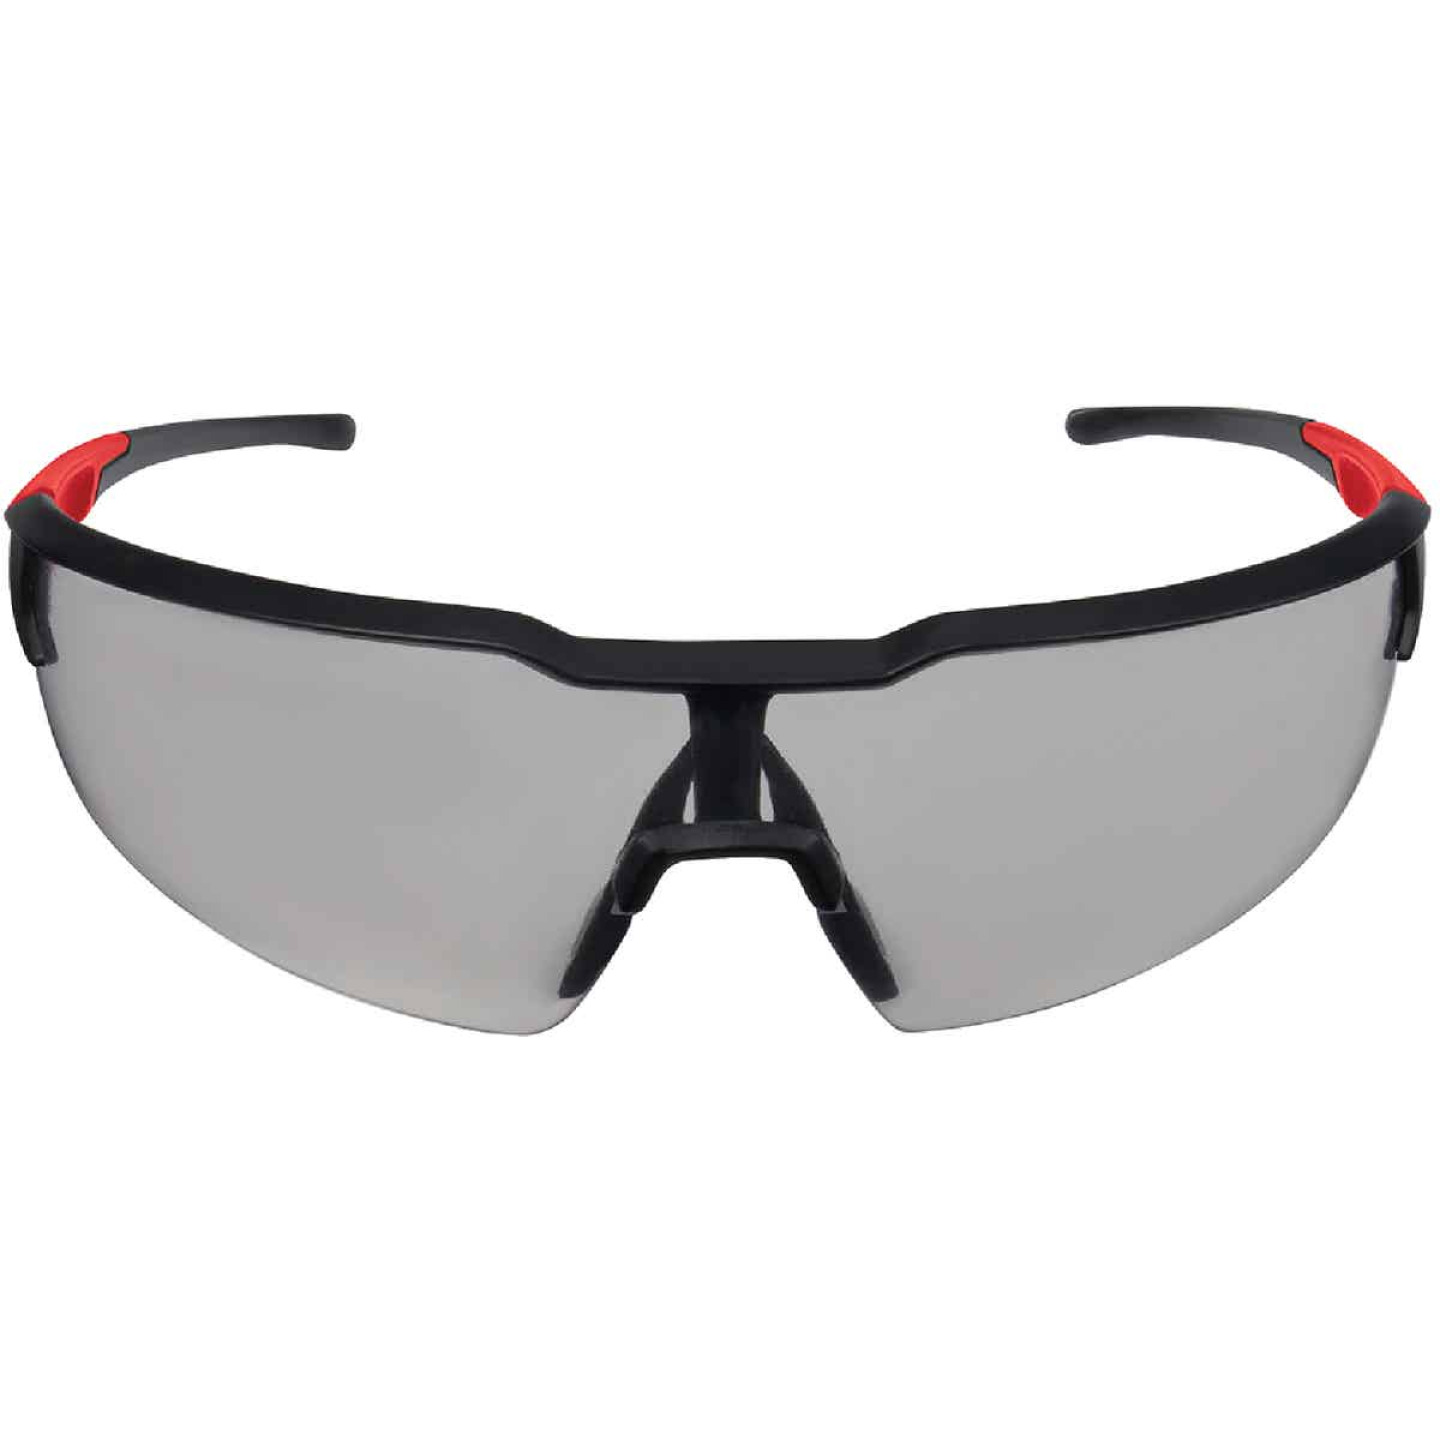 Milwaukee Red & Black Frame Safety Glasses with Gray Fog-Free Lenses Image 2